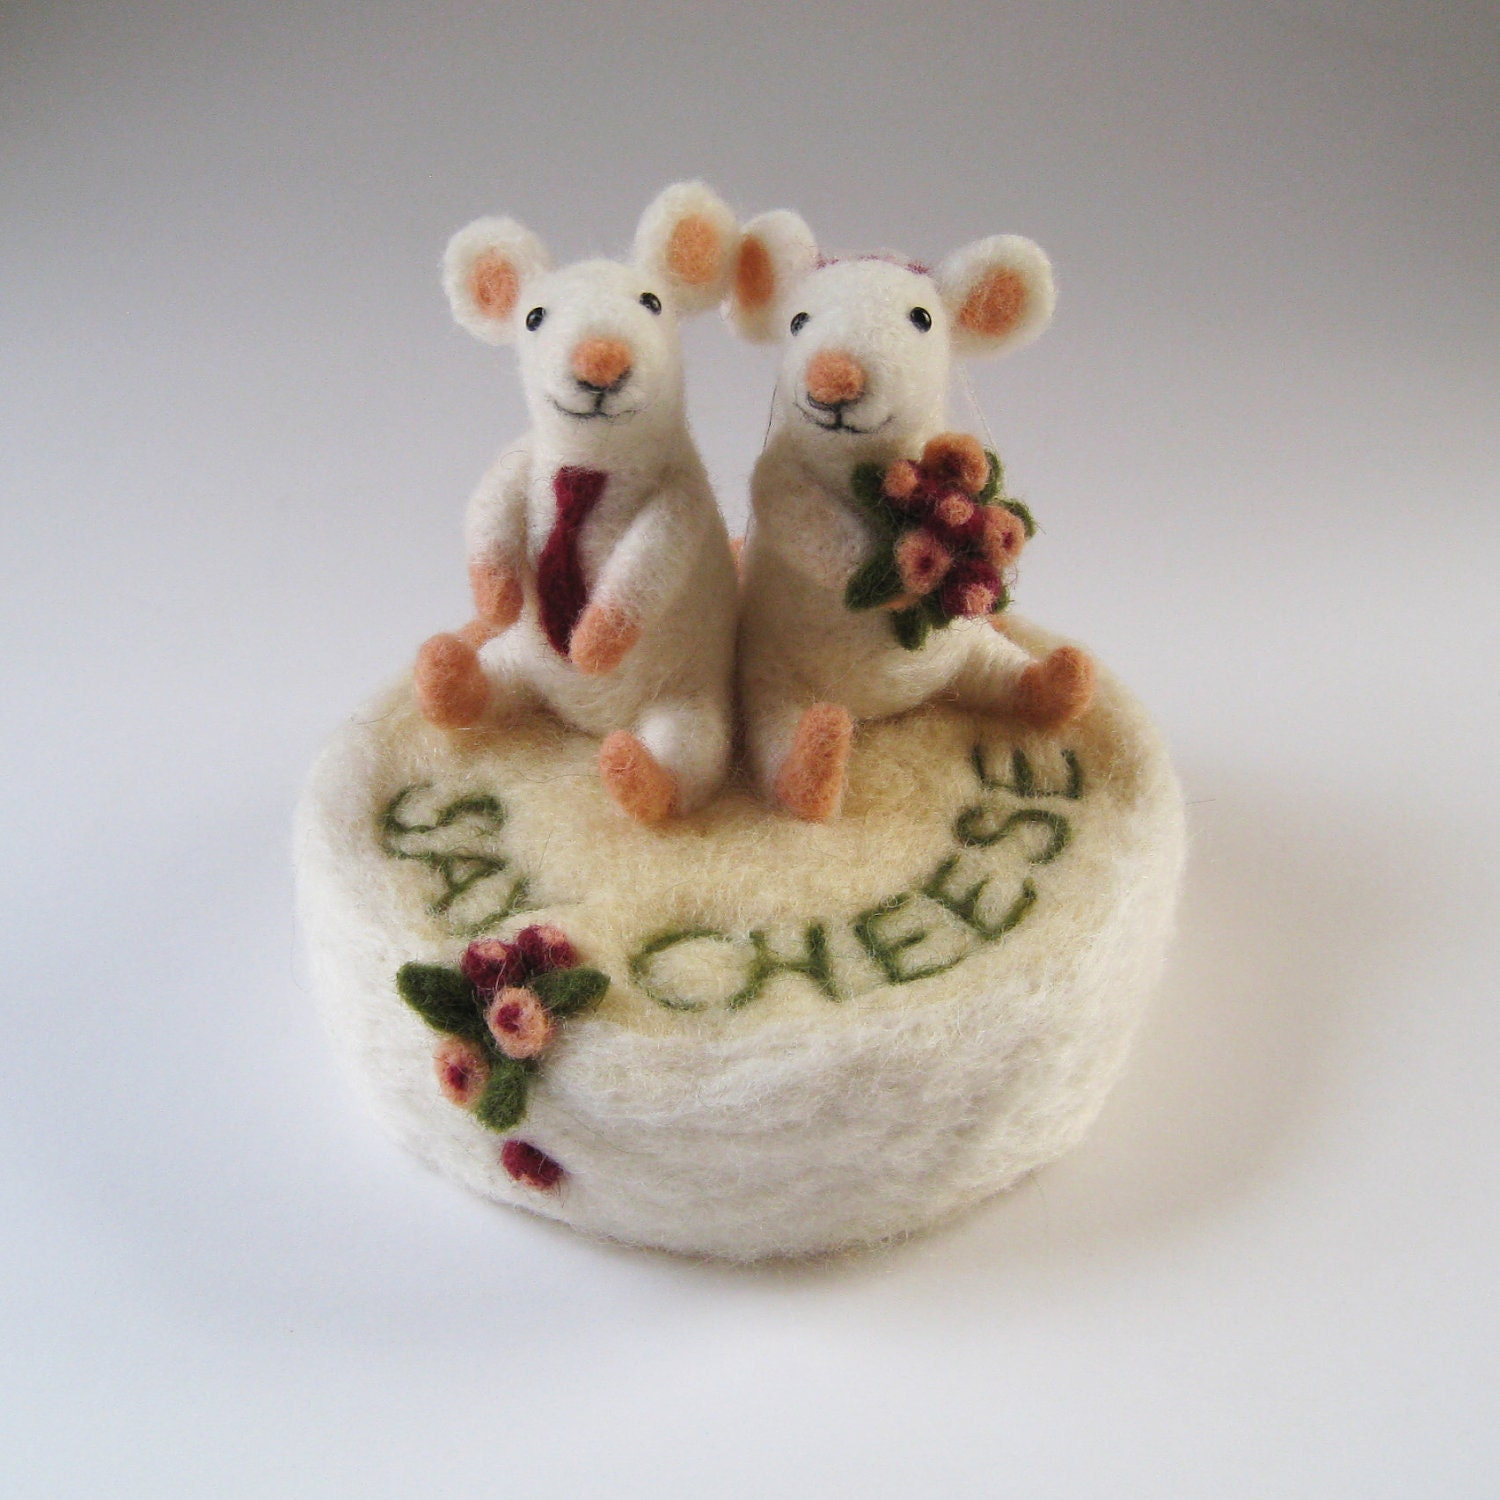 Wedding cake toppers custom made needle felted animals and